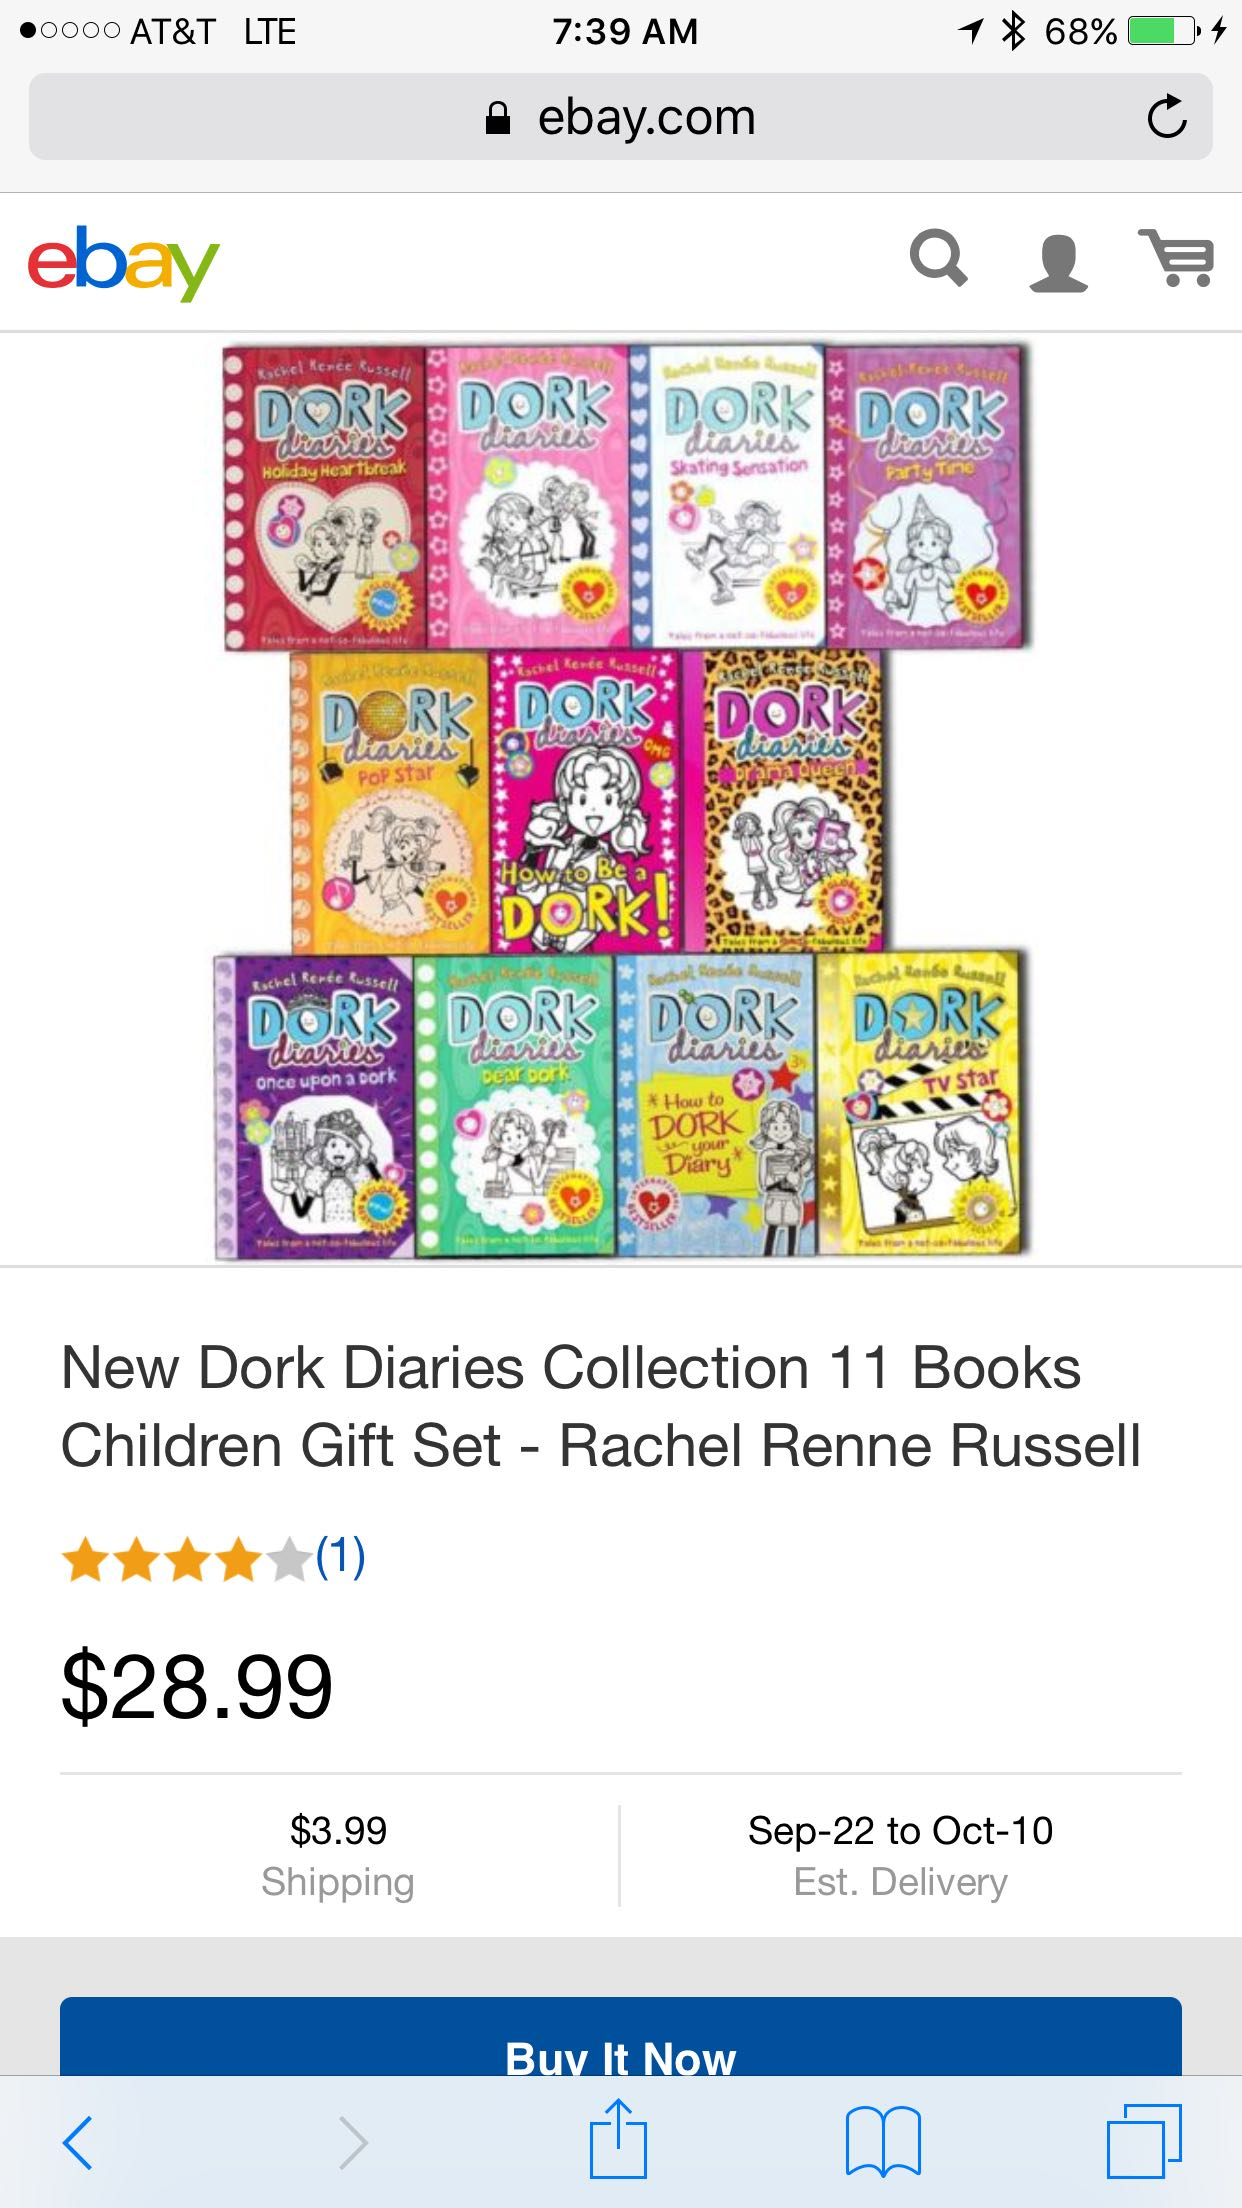 In search of Dork Diaries Books in good used condition